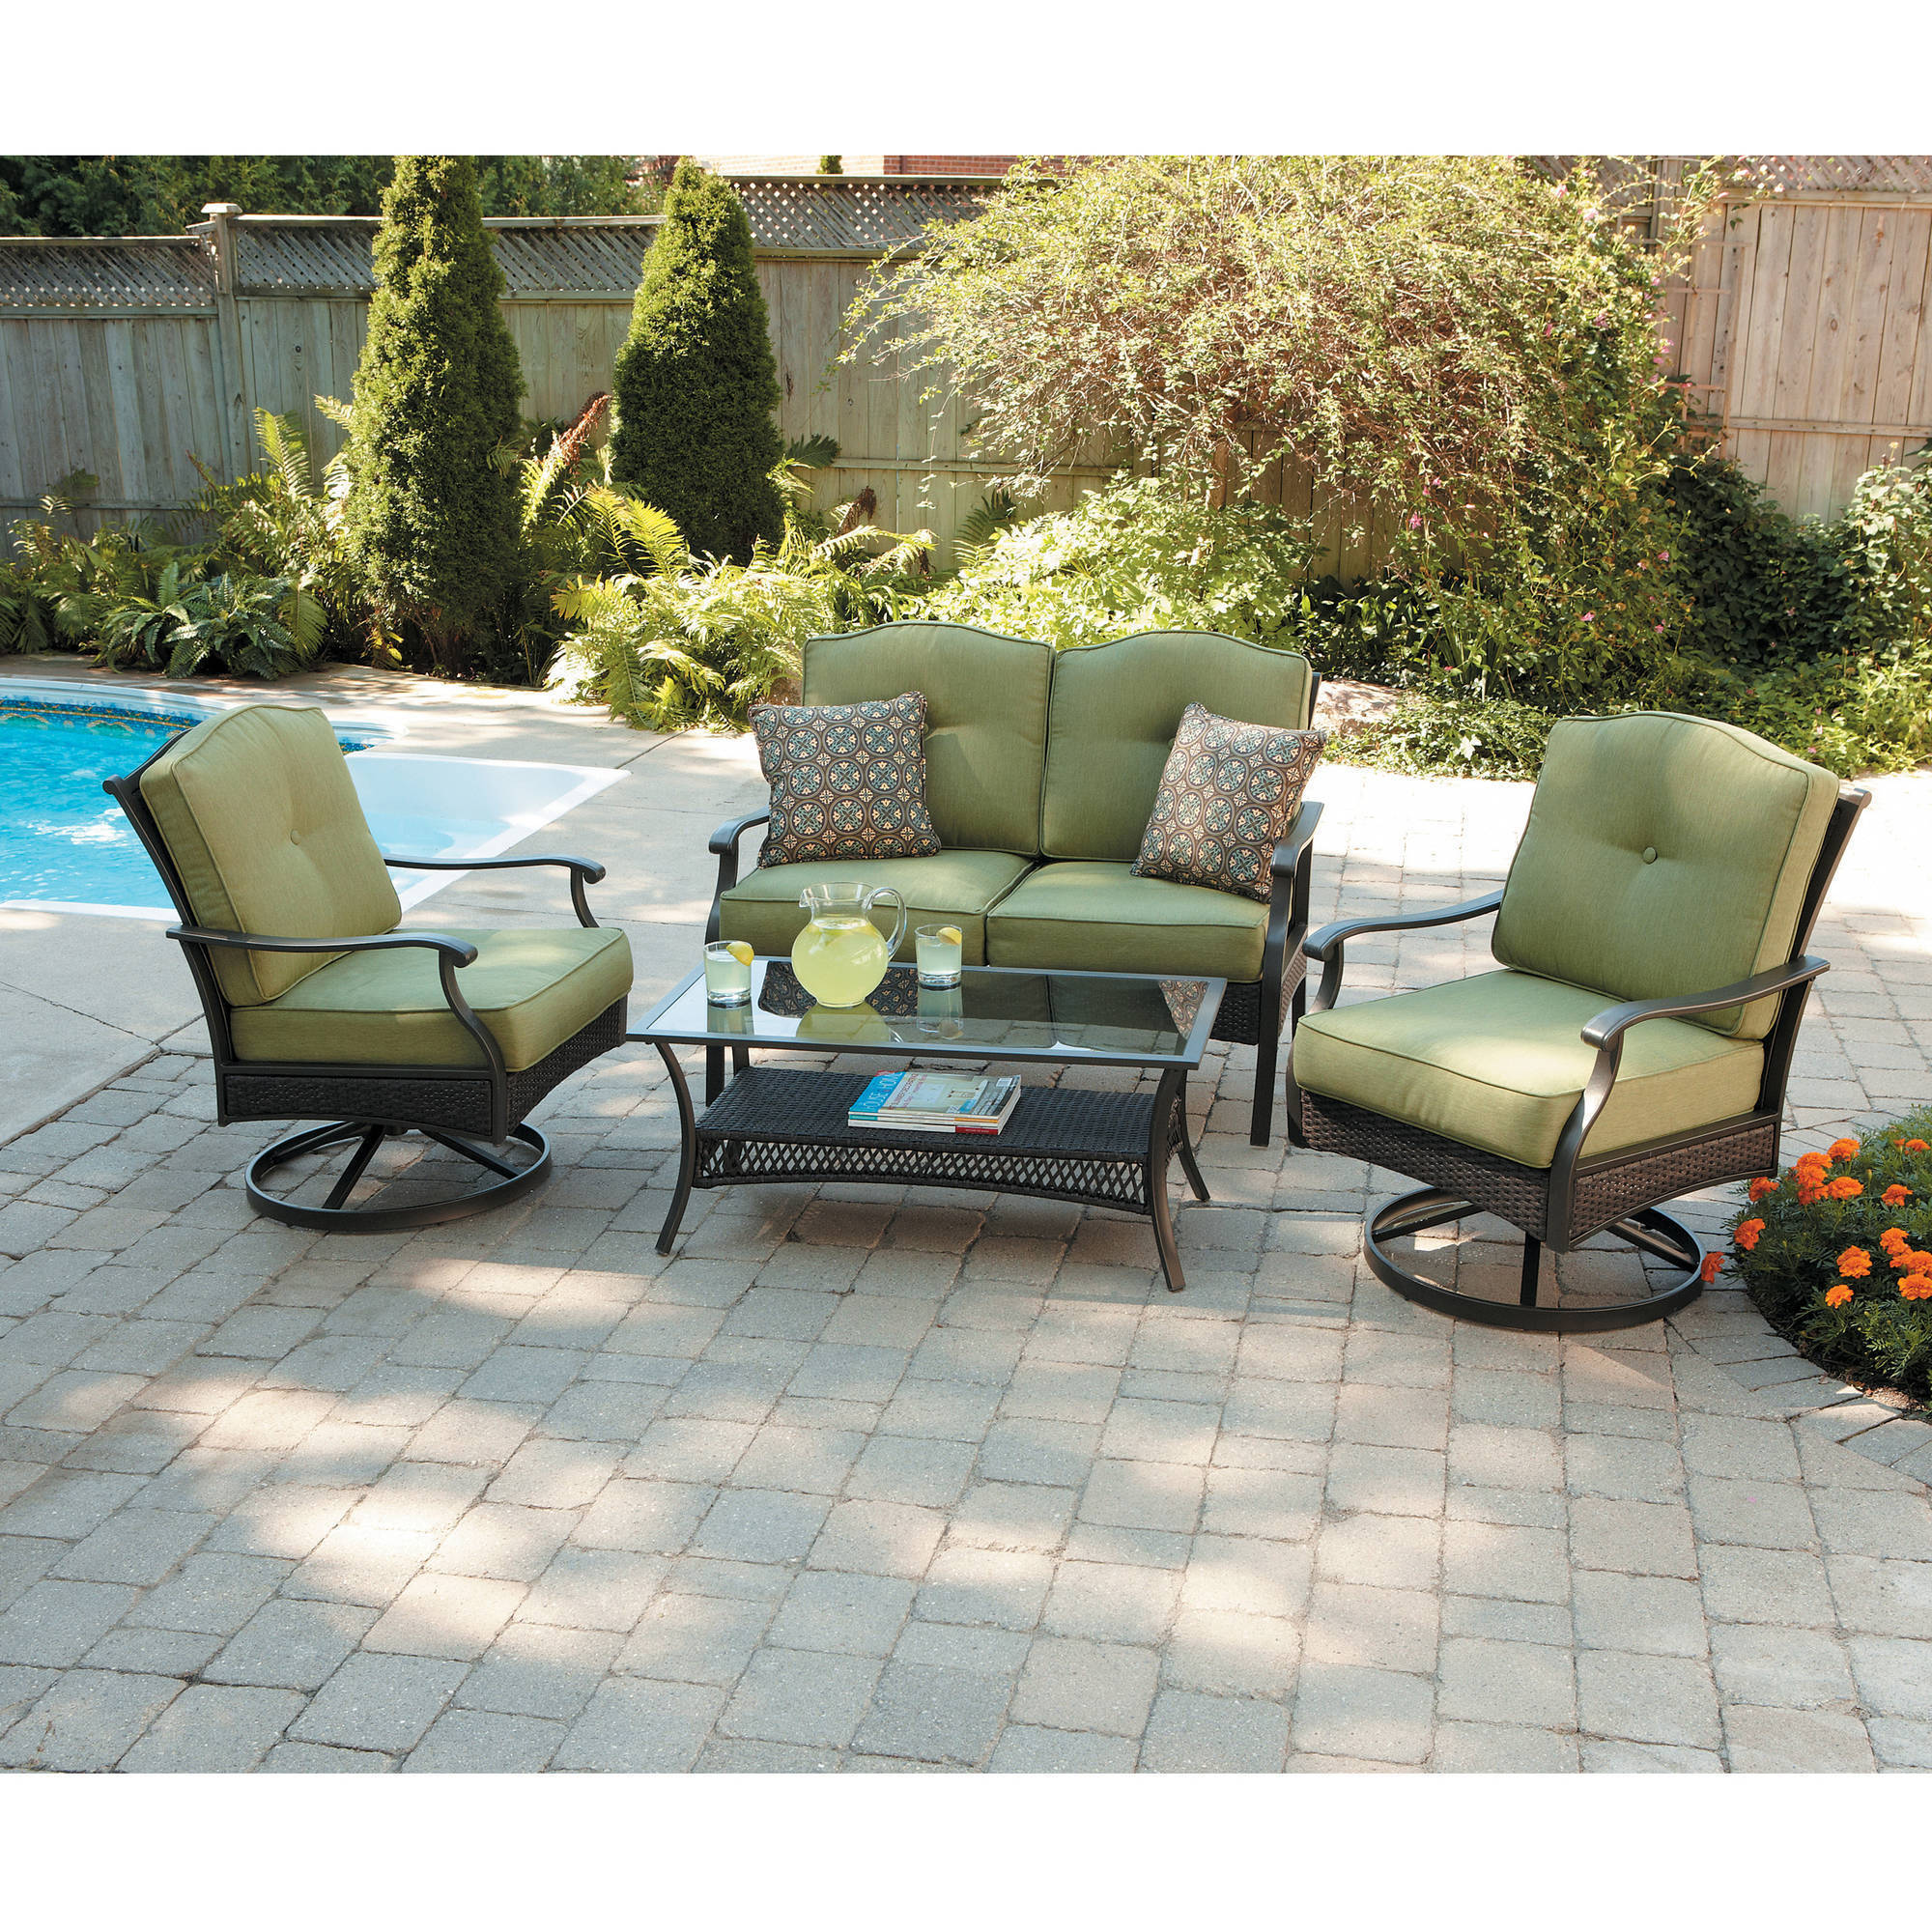 Details about better homes and gardens providence 4 piece patio conversation set seats 4